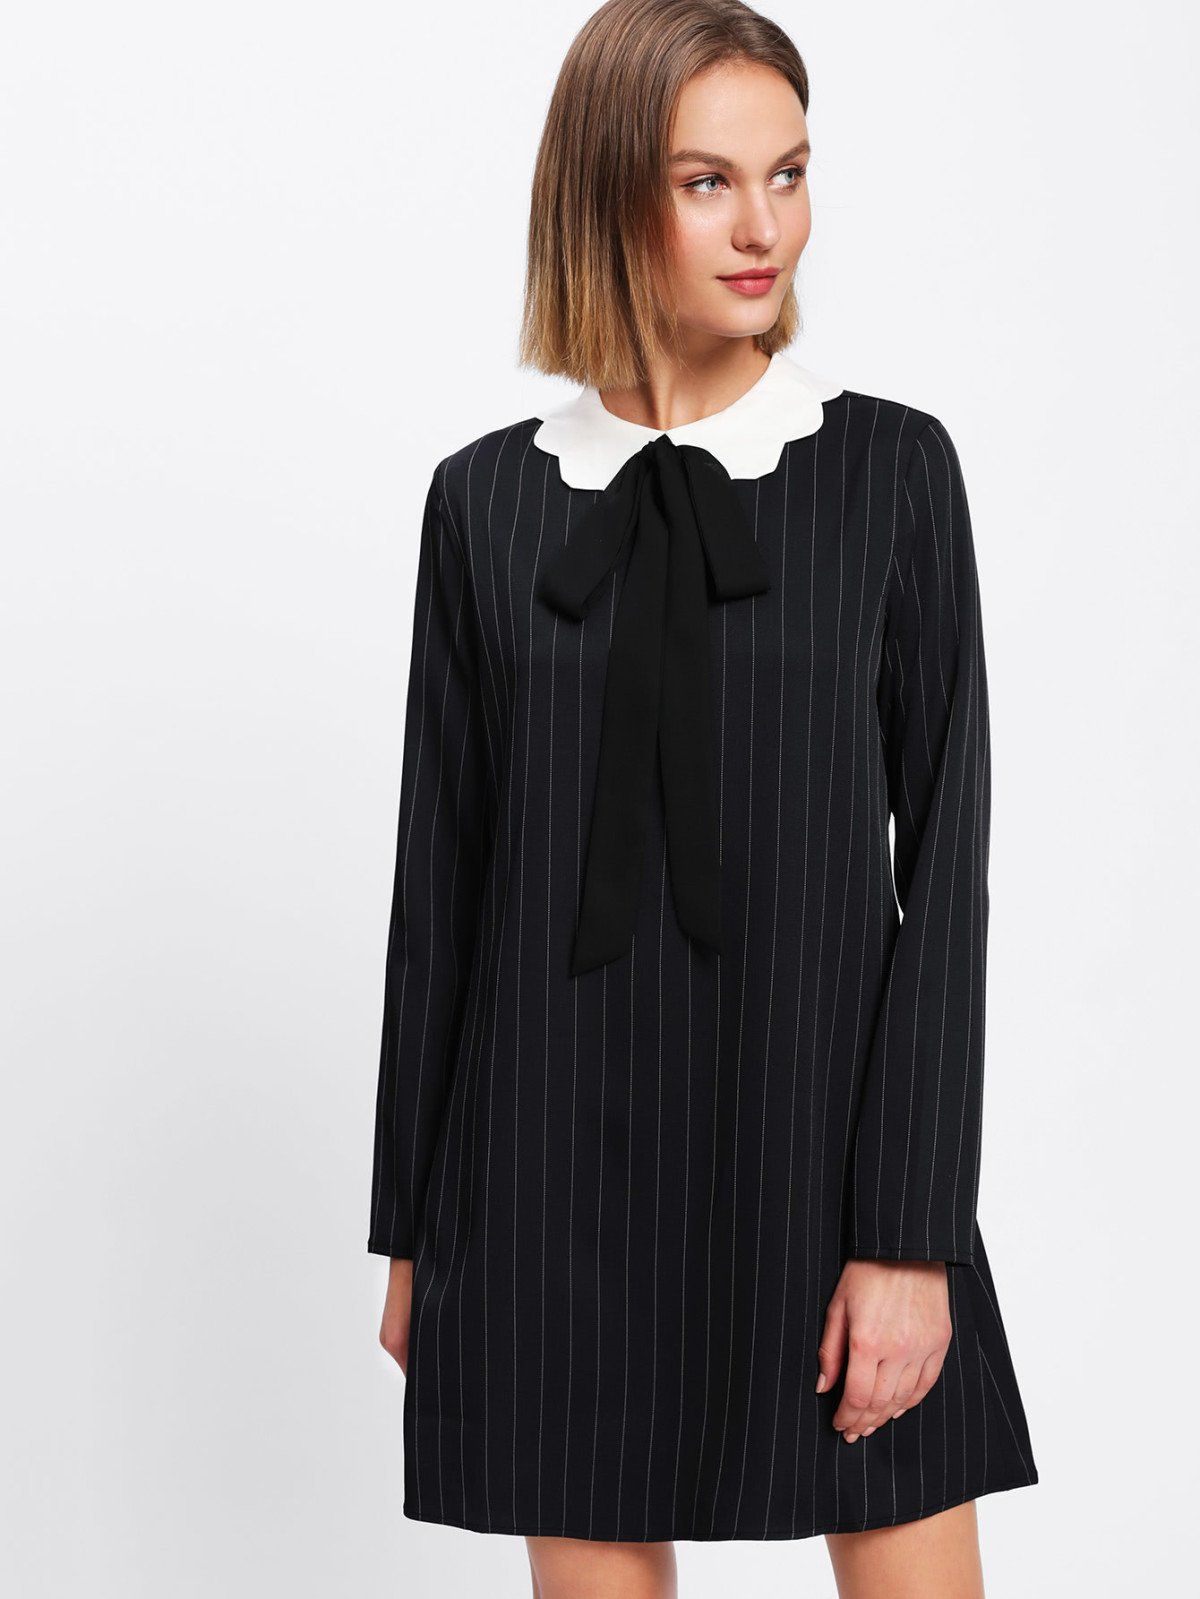 Contrast collar bow tied detail striped dress contrast collar